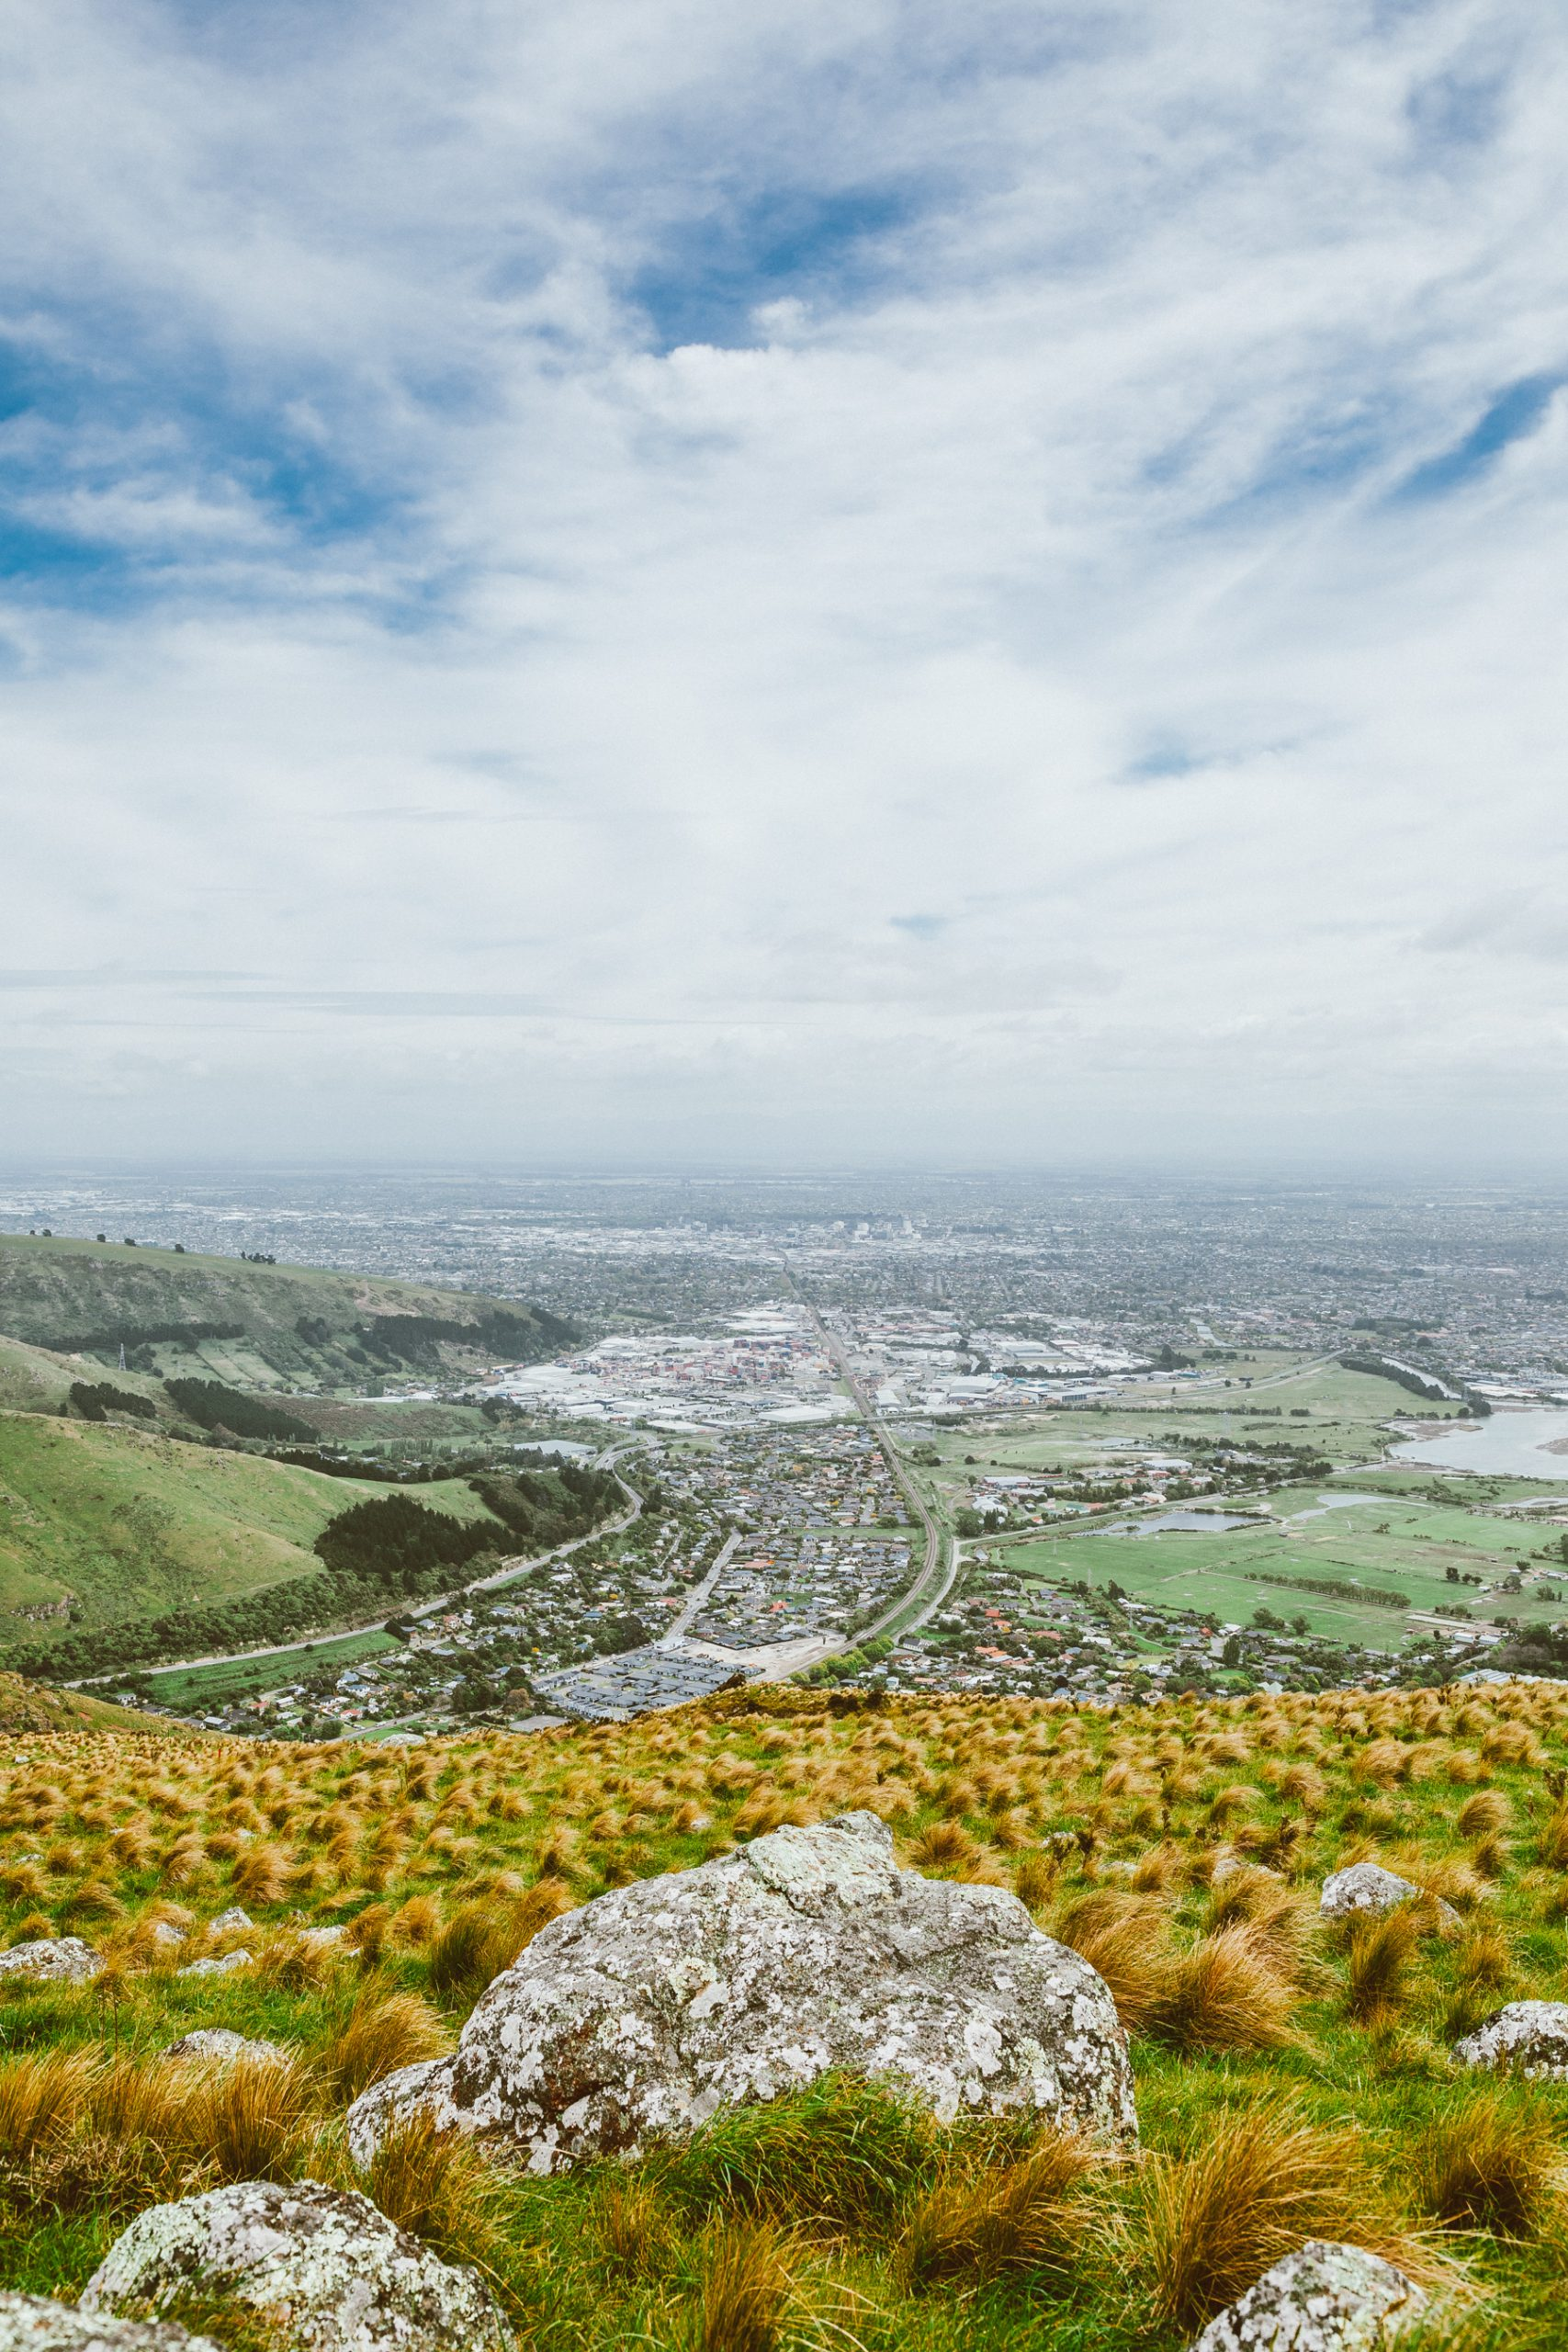 Christchurch - View from the gondola